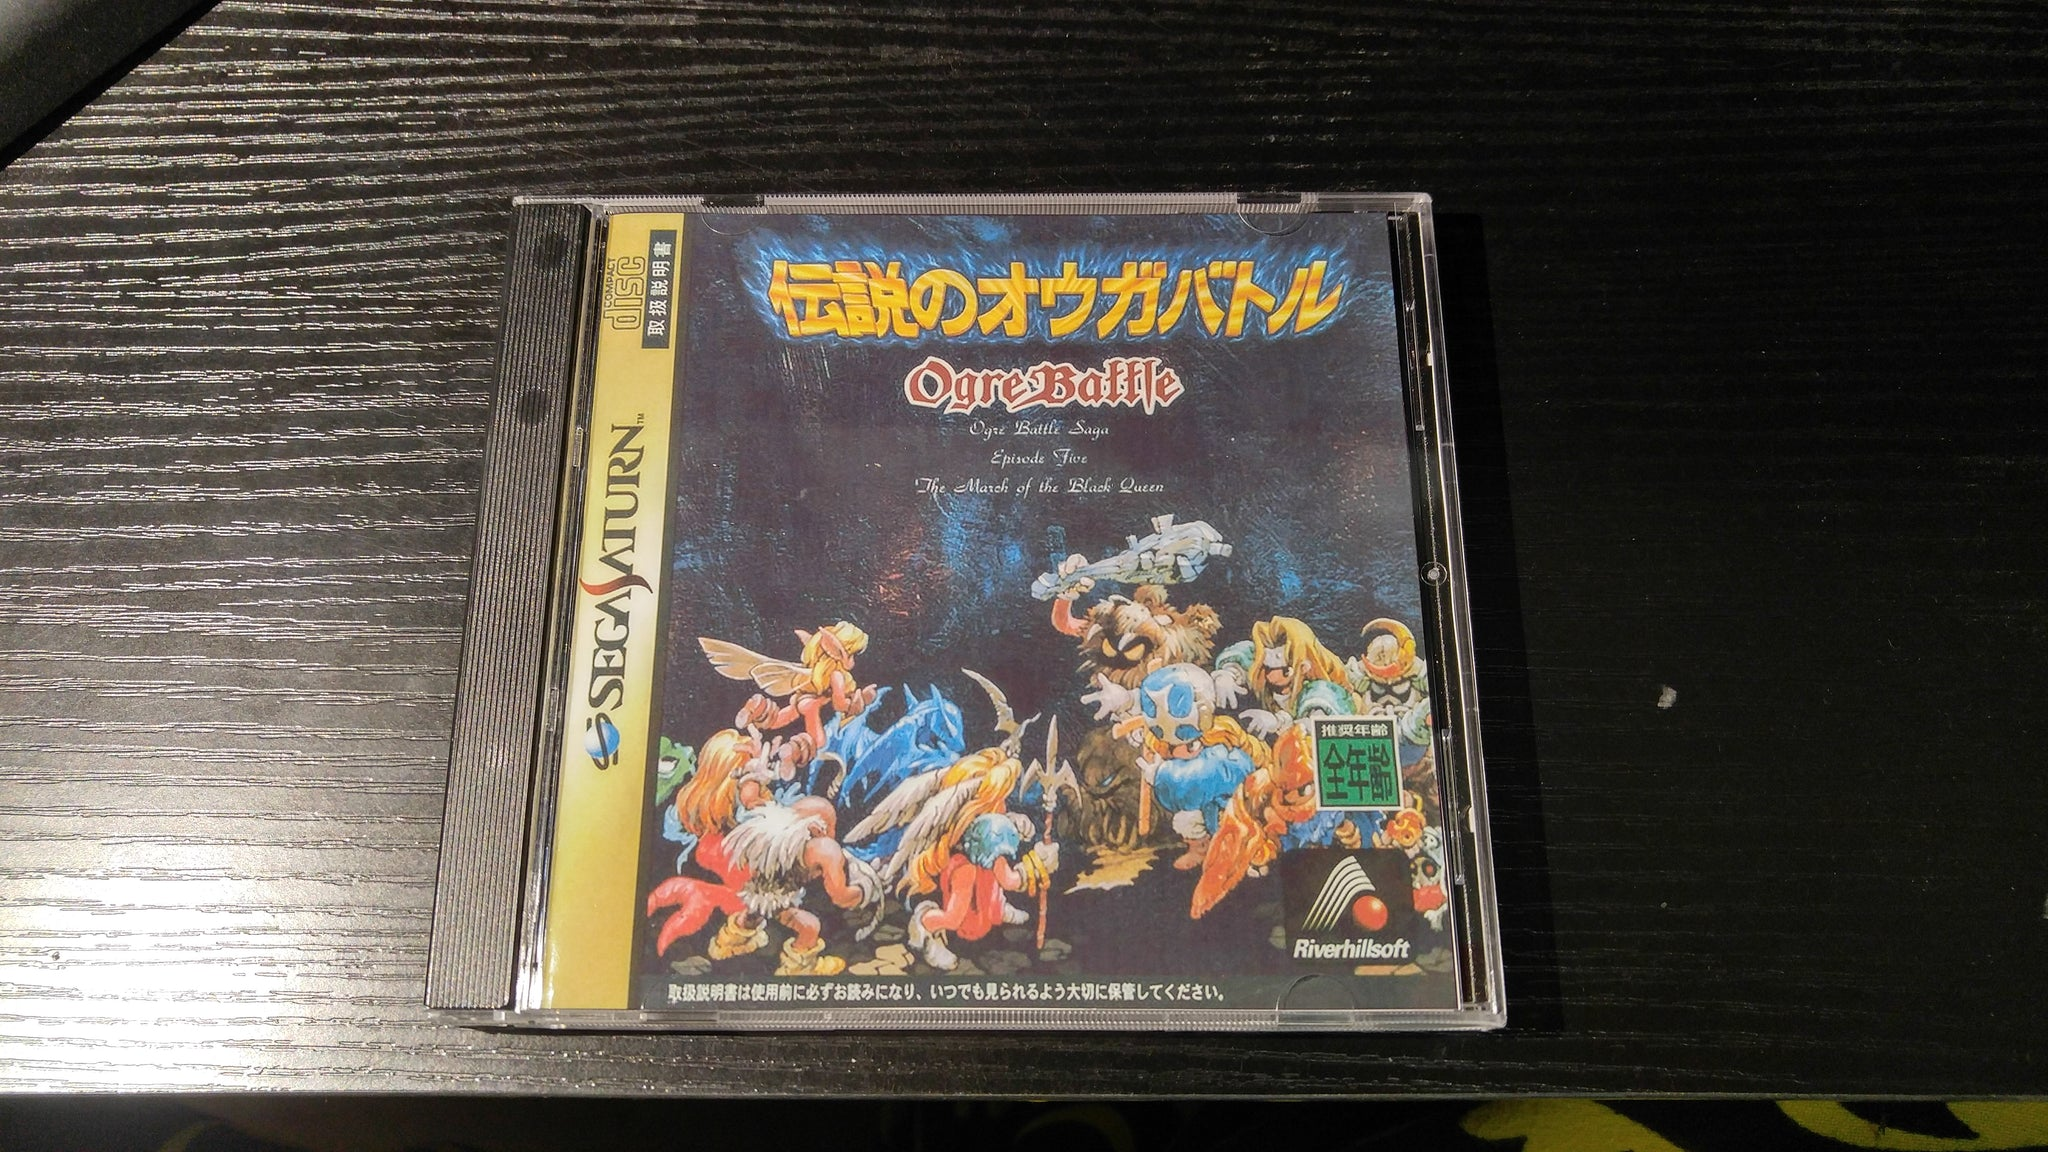 Ogre Battle Sega Saturn reproduction